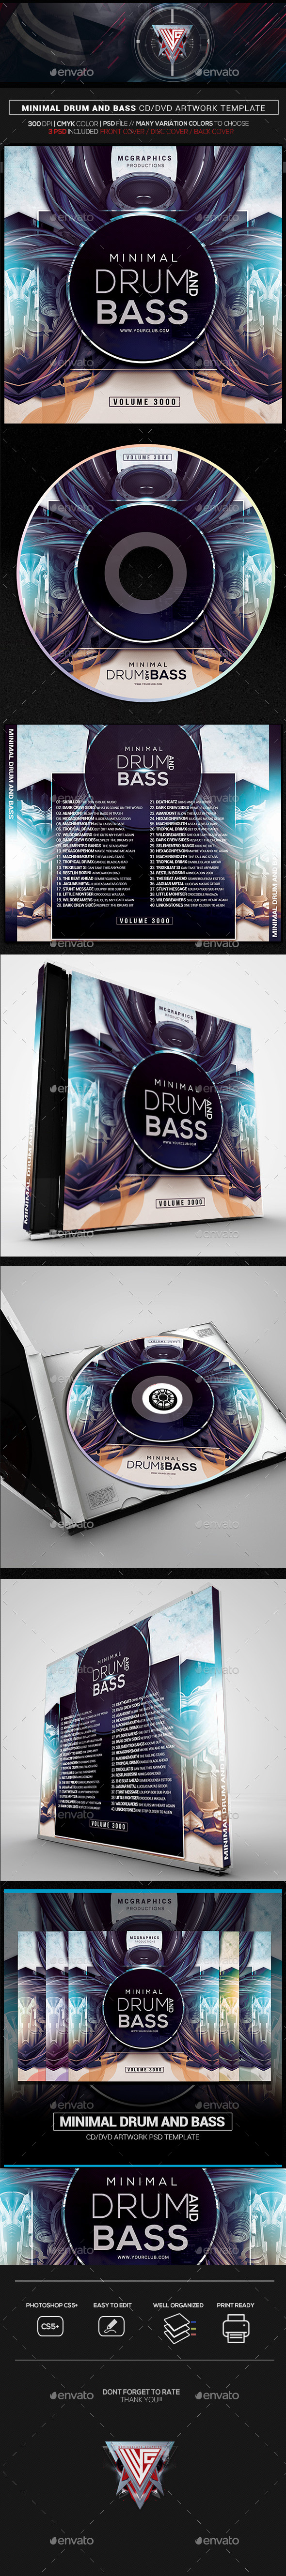 Minimal Drum and Bass CD/DVD Template - CD & DVD Artwork Print Templates